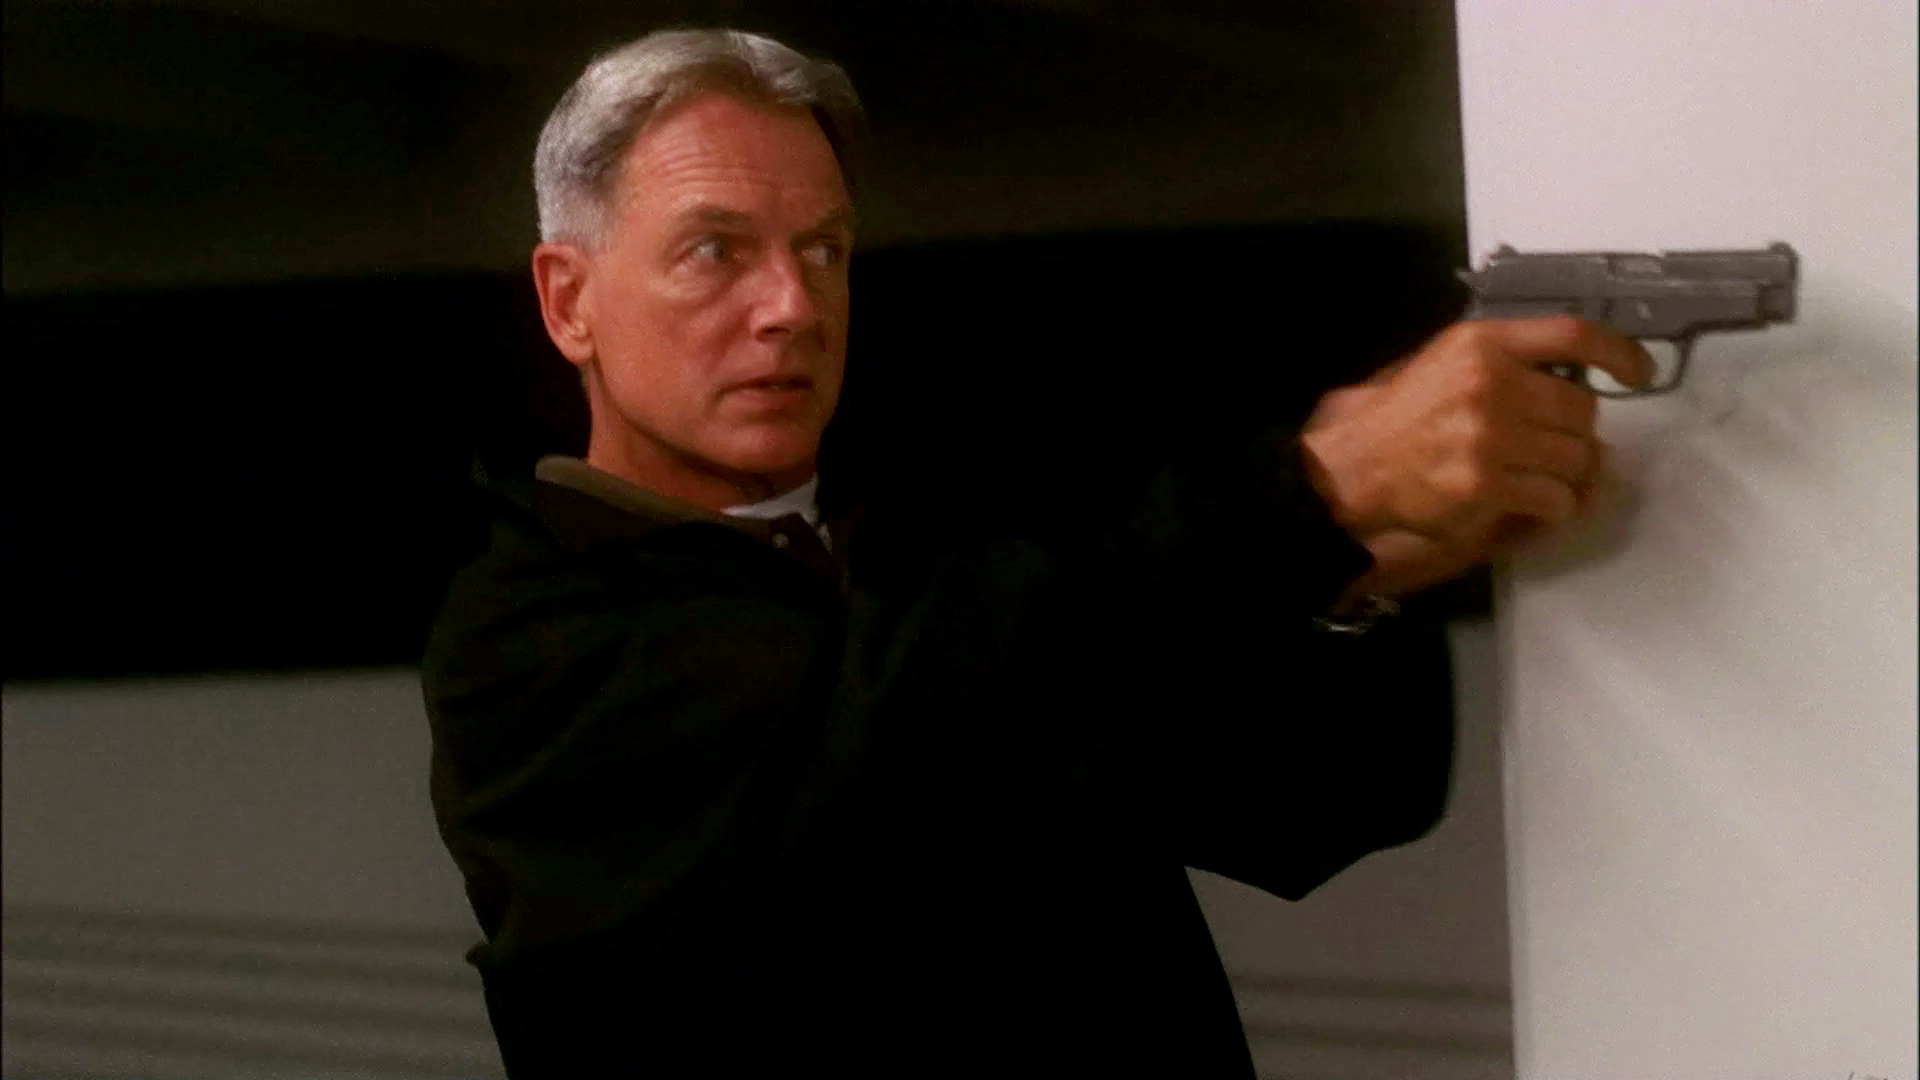 Watch NCIS Season 3 Episode 7: Honor Code - Full show on CBS All Access